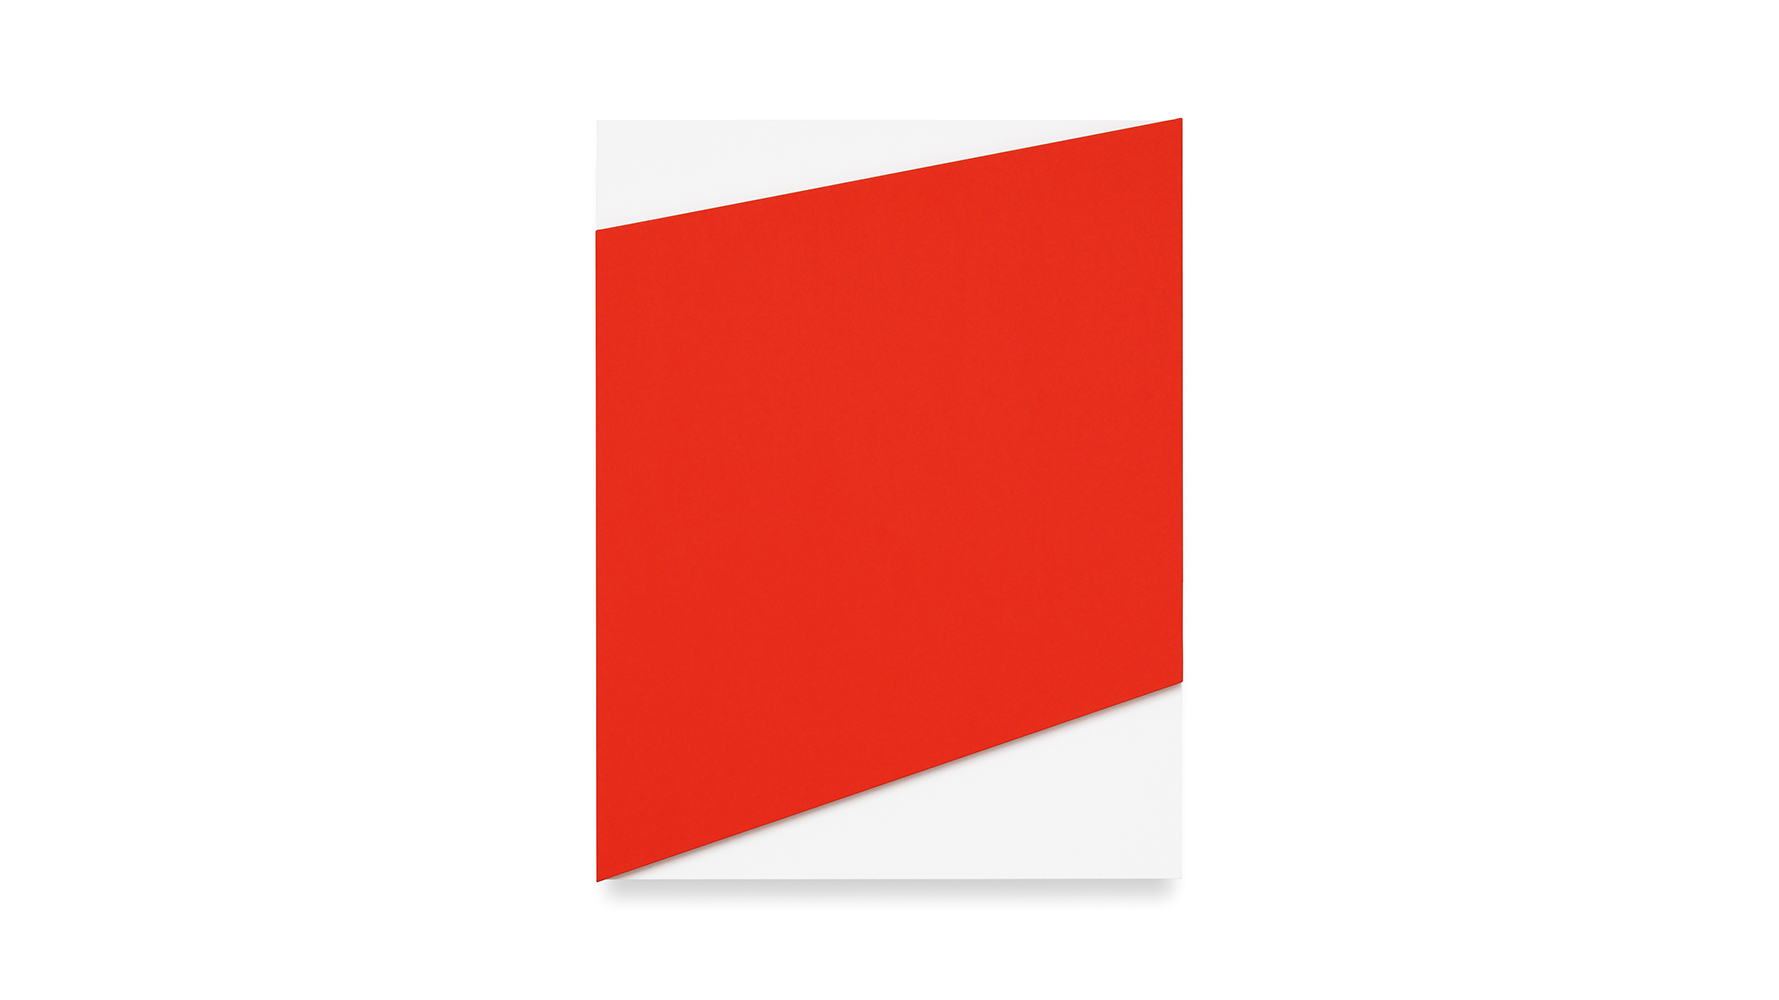 Ellsworth Kelly, Red Relief over White, 2013